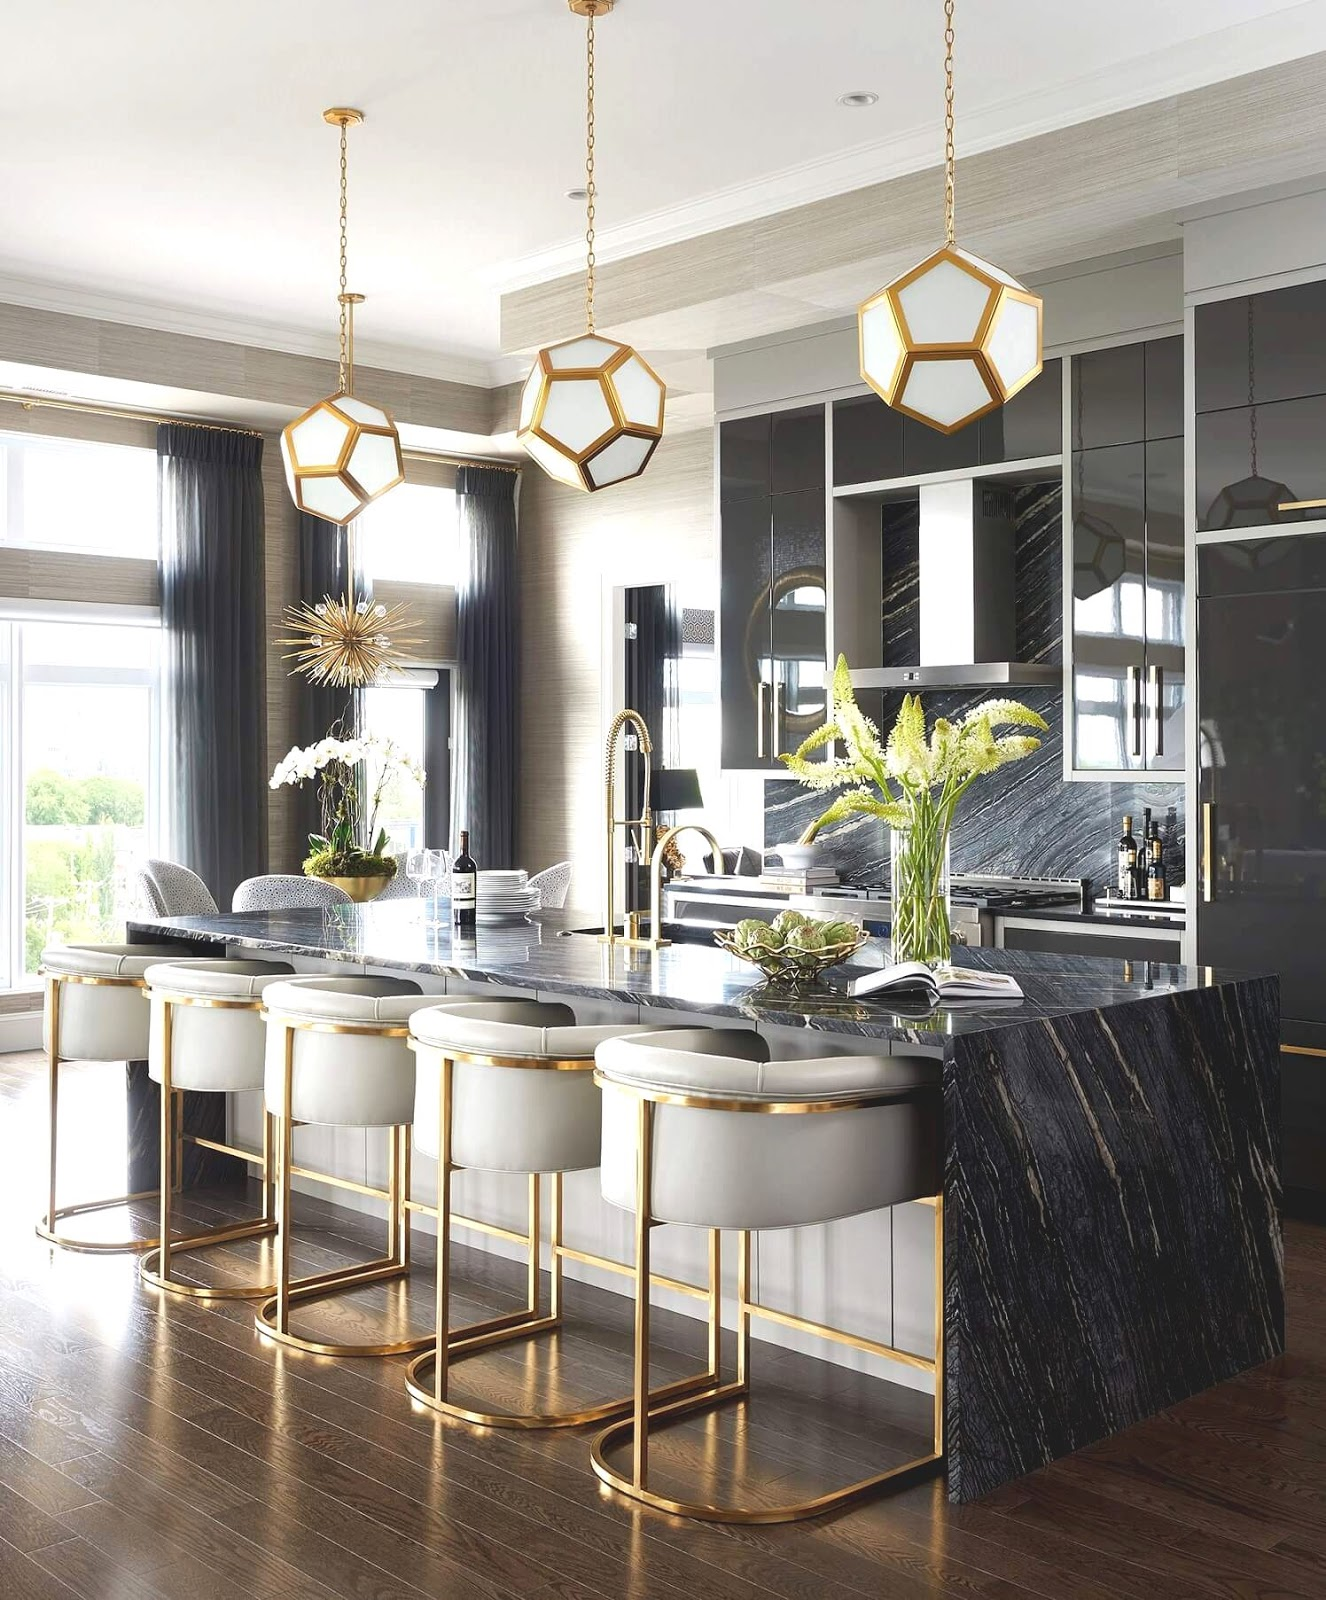 NONAGON style ns who wore it better Atmosphere marble kitchen dark black glamour art deco gold luxury island stools